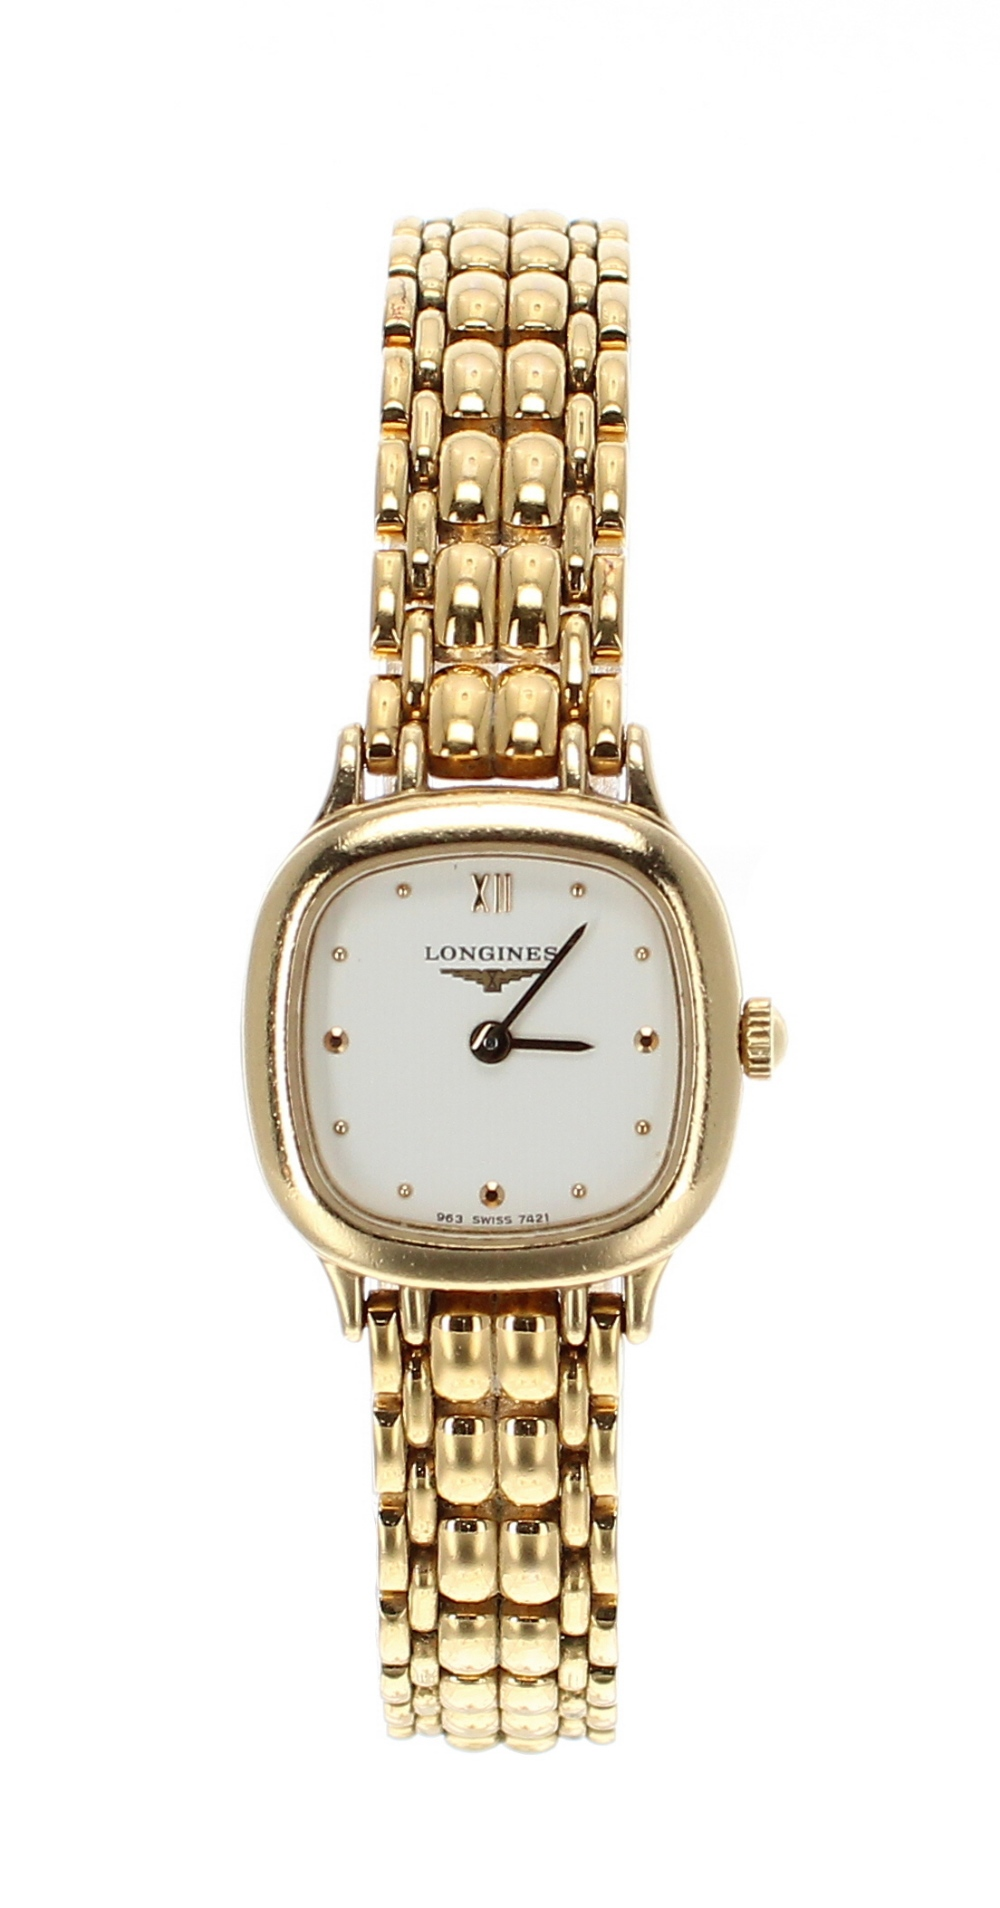 Lot 40 - Longines square cased gold plated and stainless steel lady's bracelet watch, ref. L5 125 2,